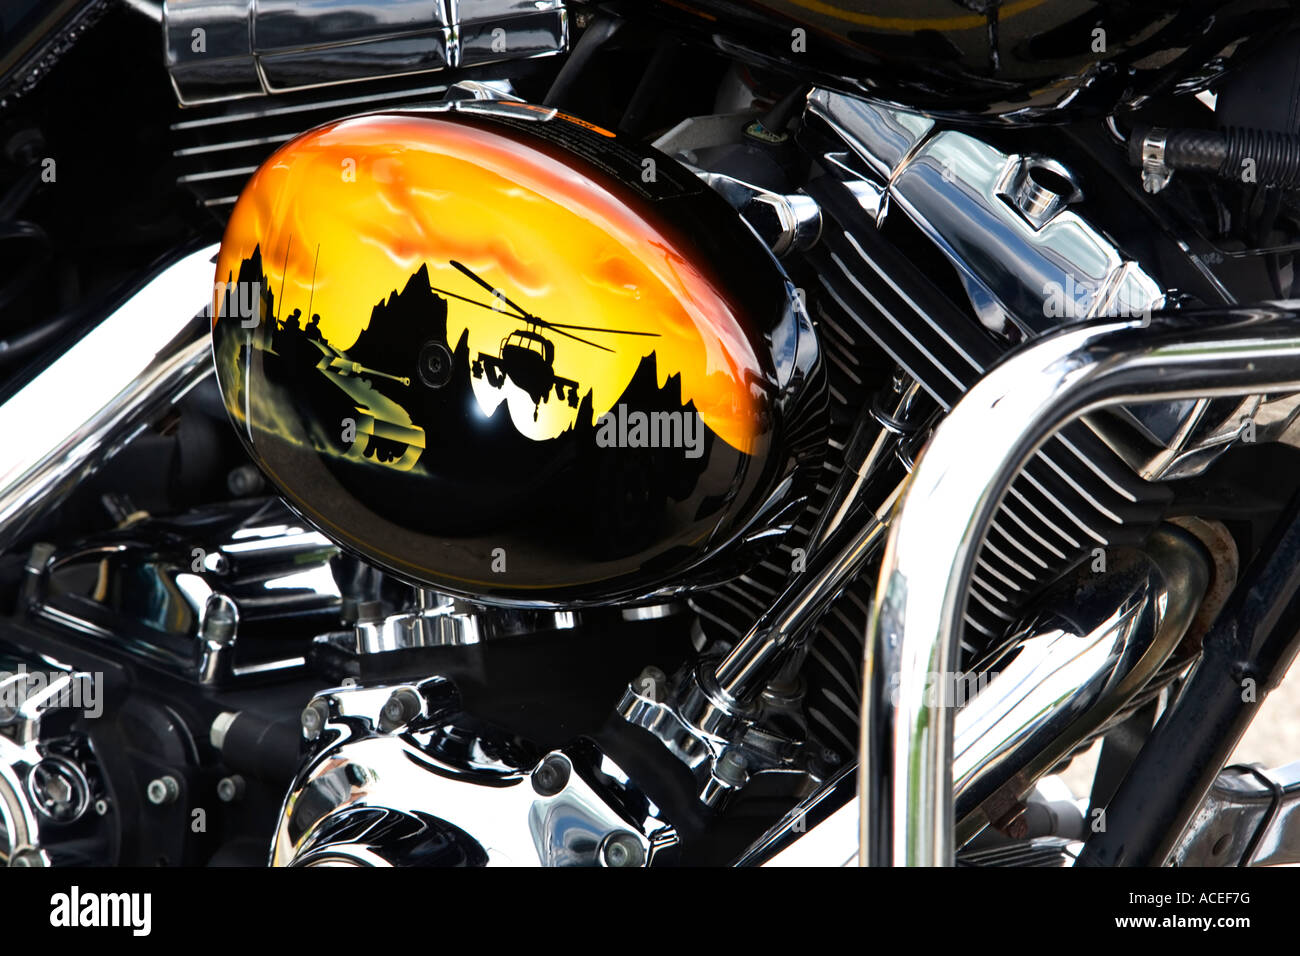 motorcycle paint helicopter and tank harley davidson motorcycle stock photo 13132419 alamy. Black Bedroom Furniture Sets. Home Design Ideas